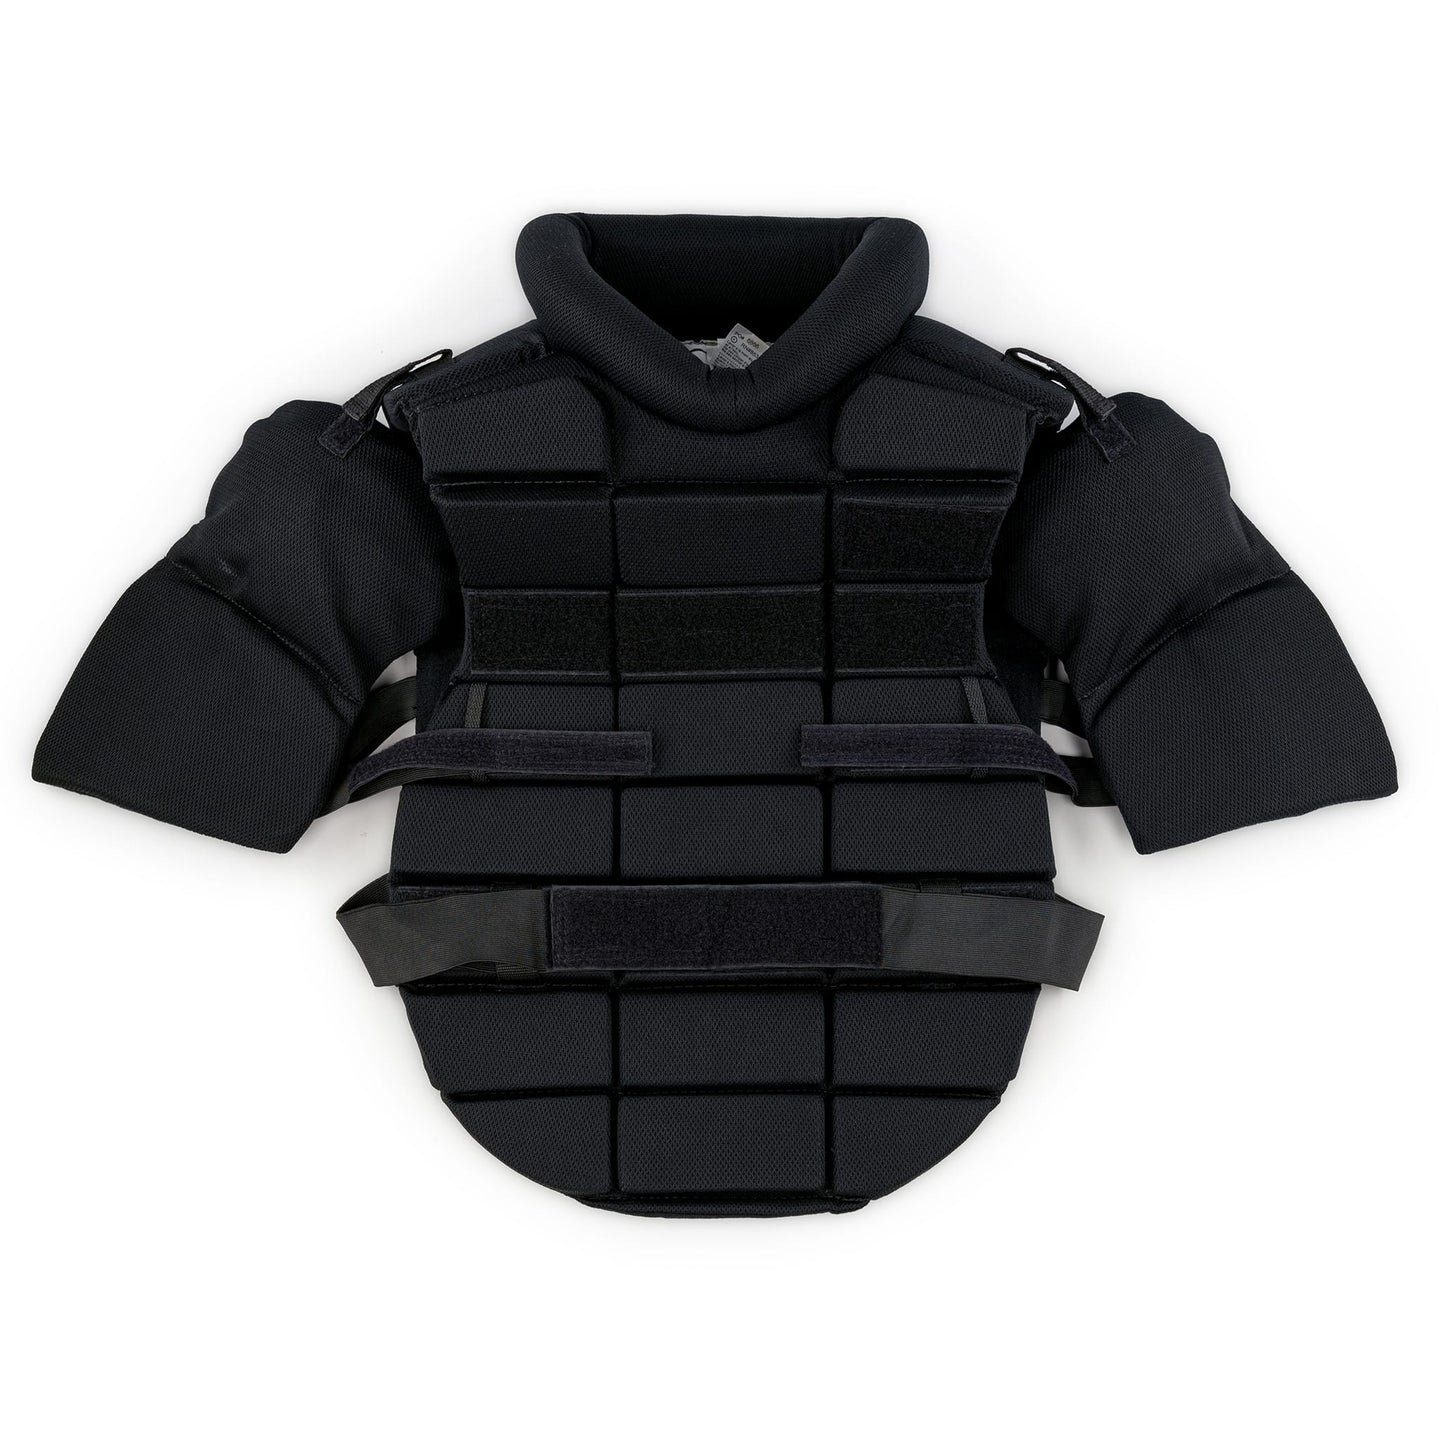 Police Trade-In Hatch Centurion Riot Vest